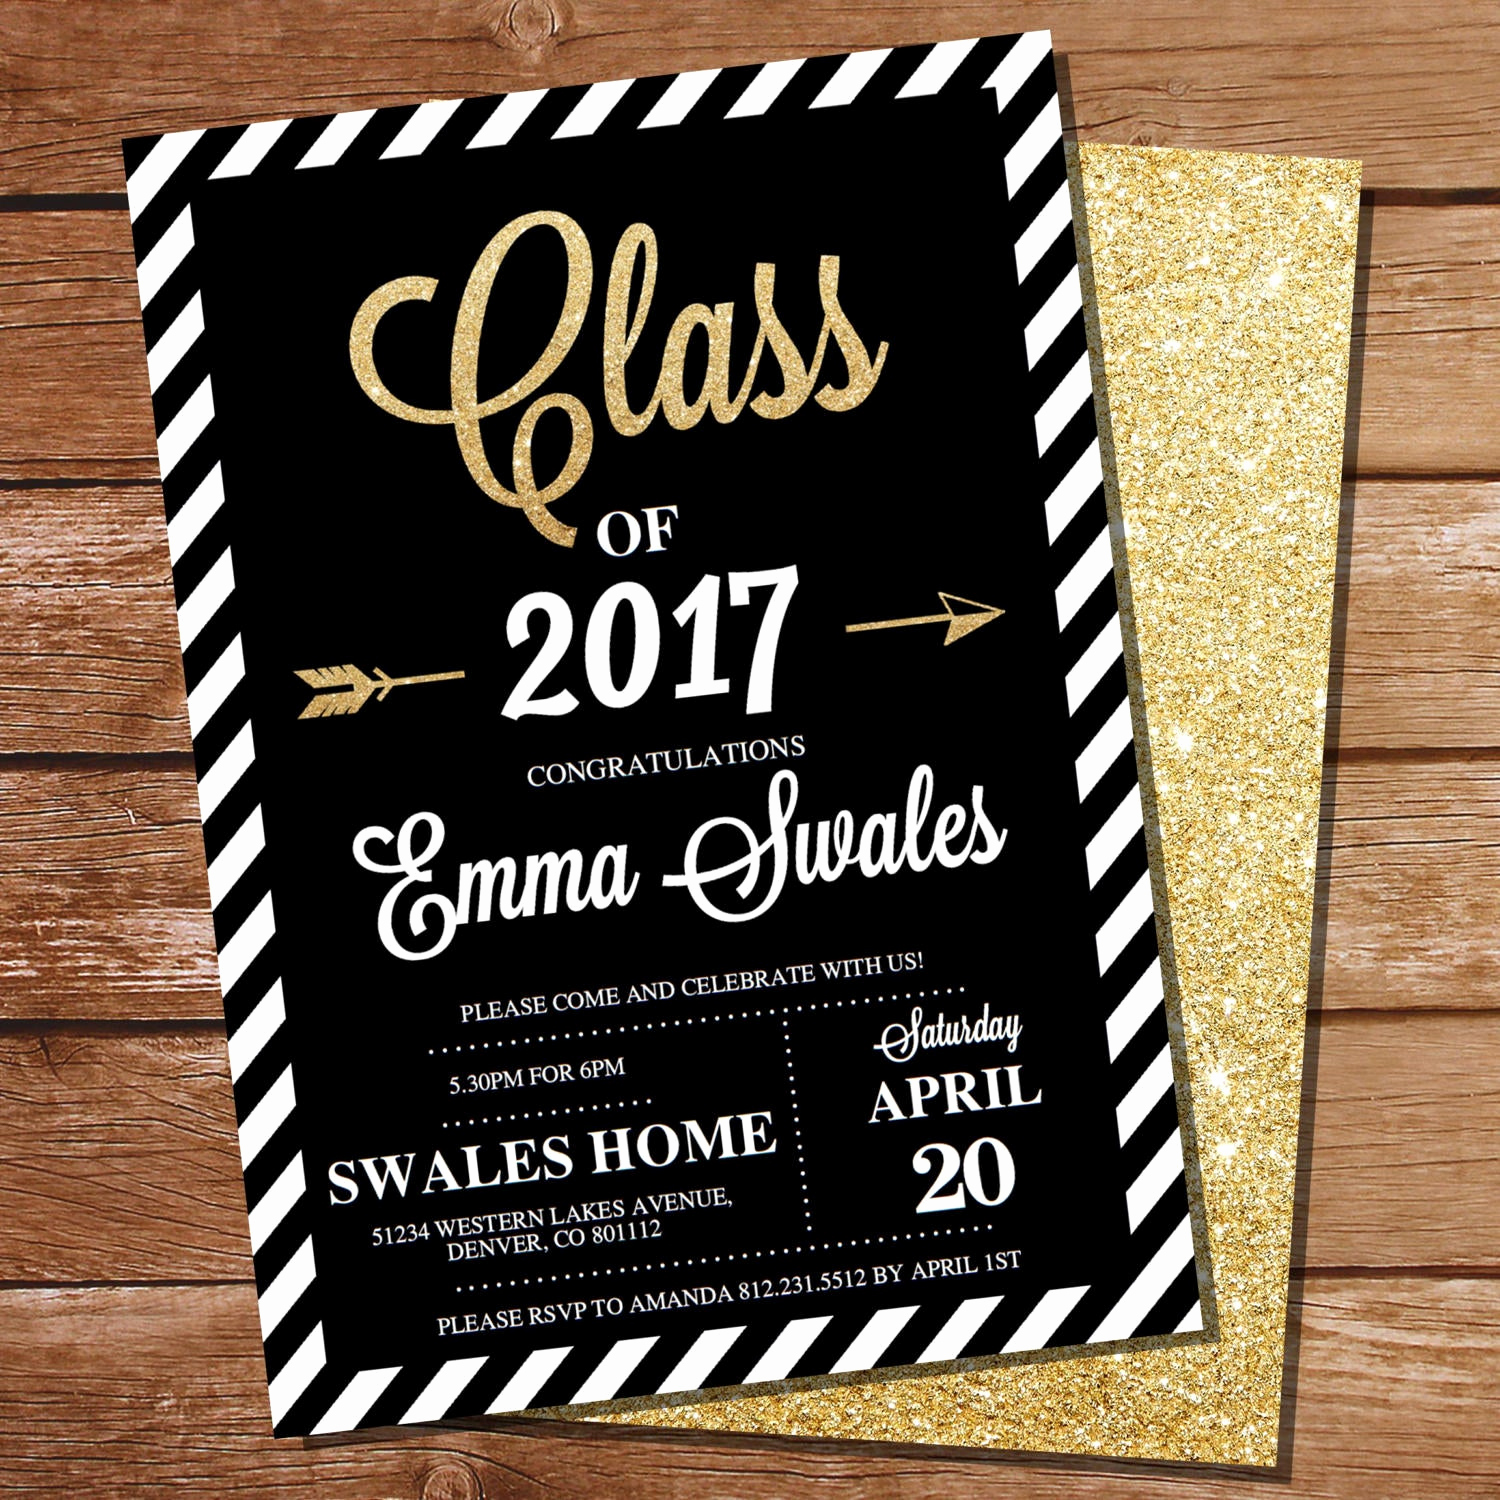 Invitation Ideas for Graduation Lovely Graduation Invitation Black and Gold Graduation Invitation